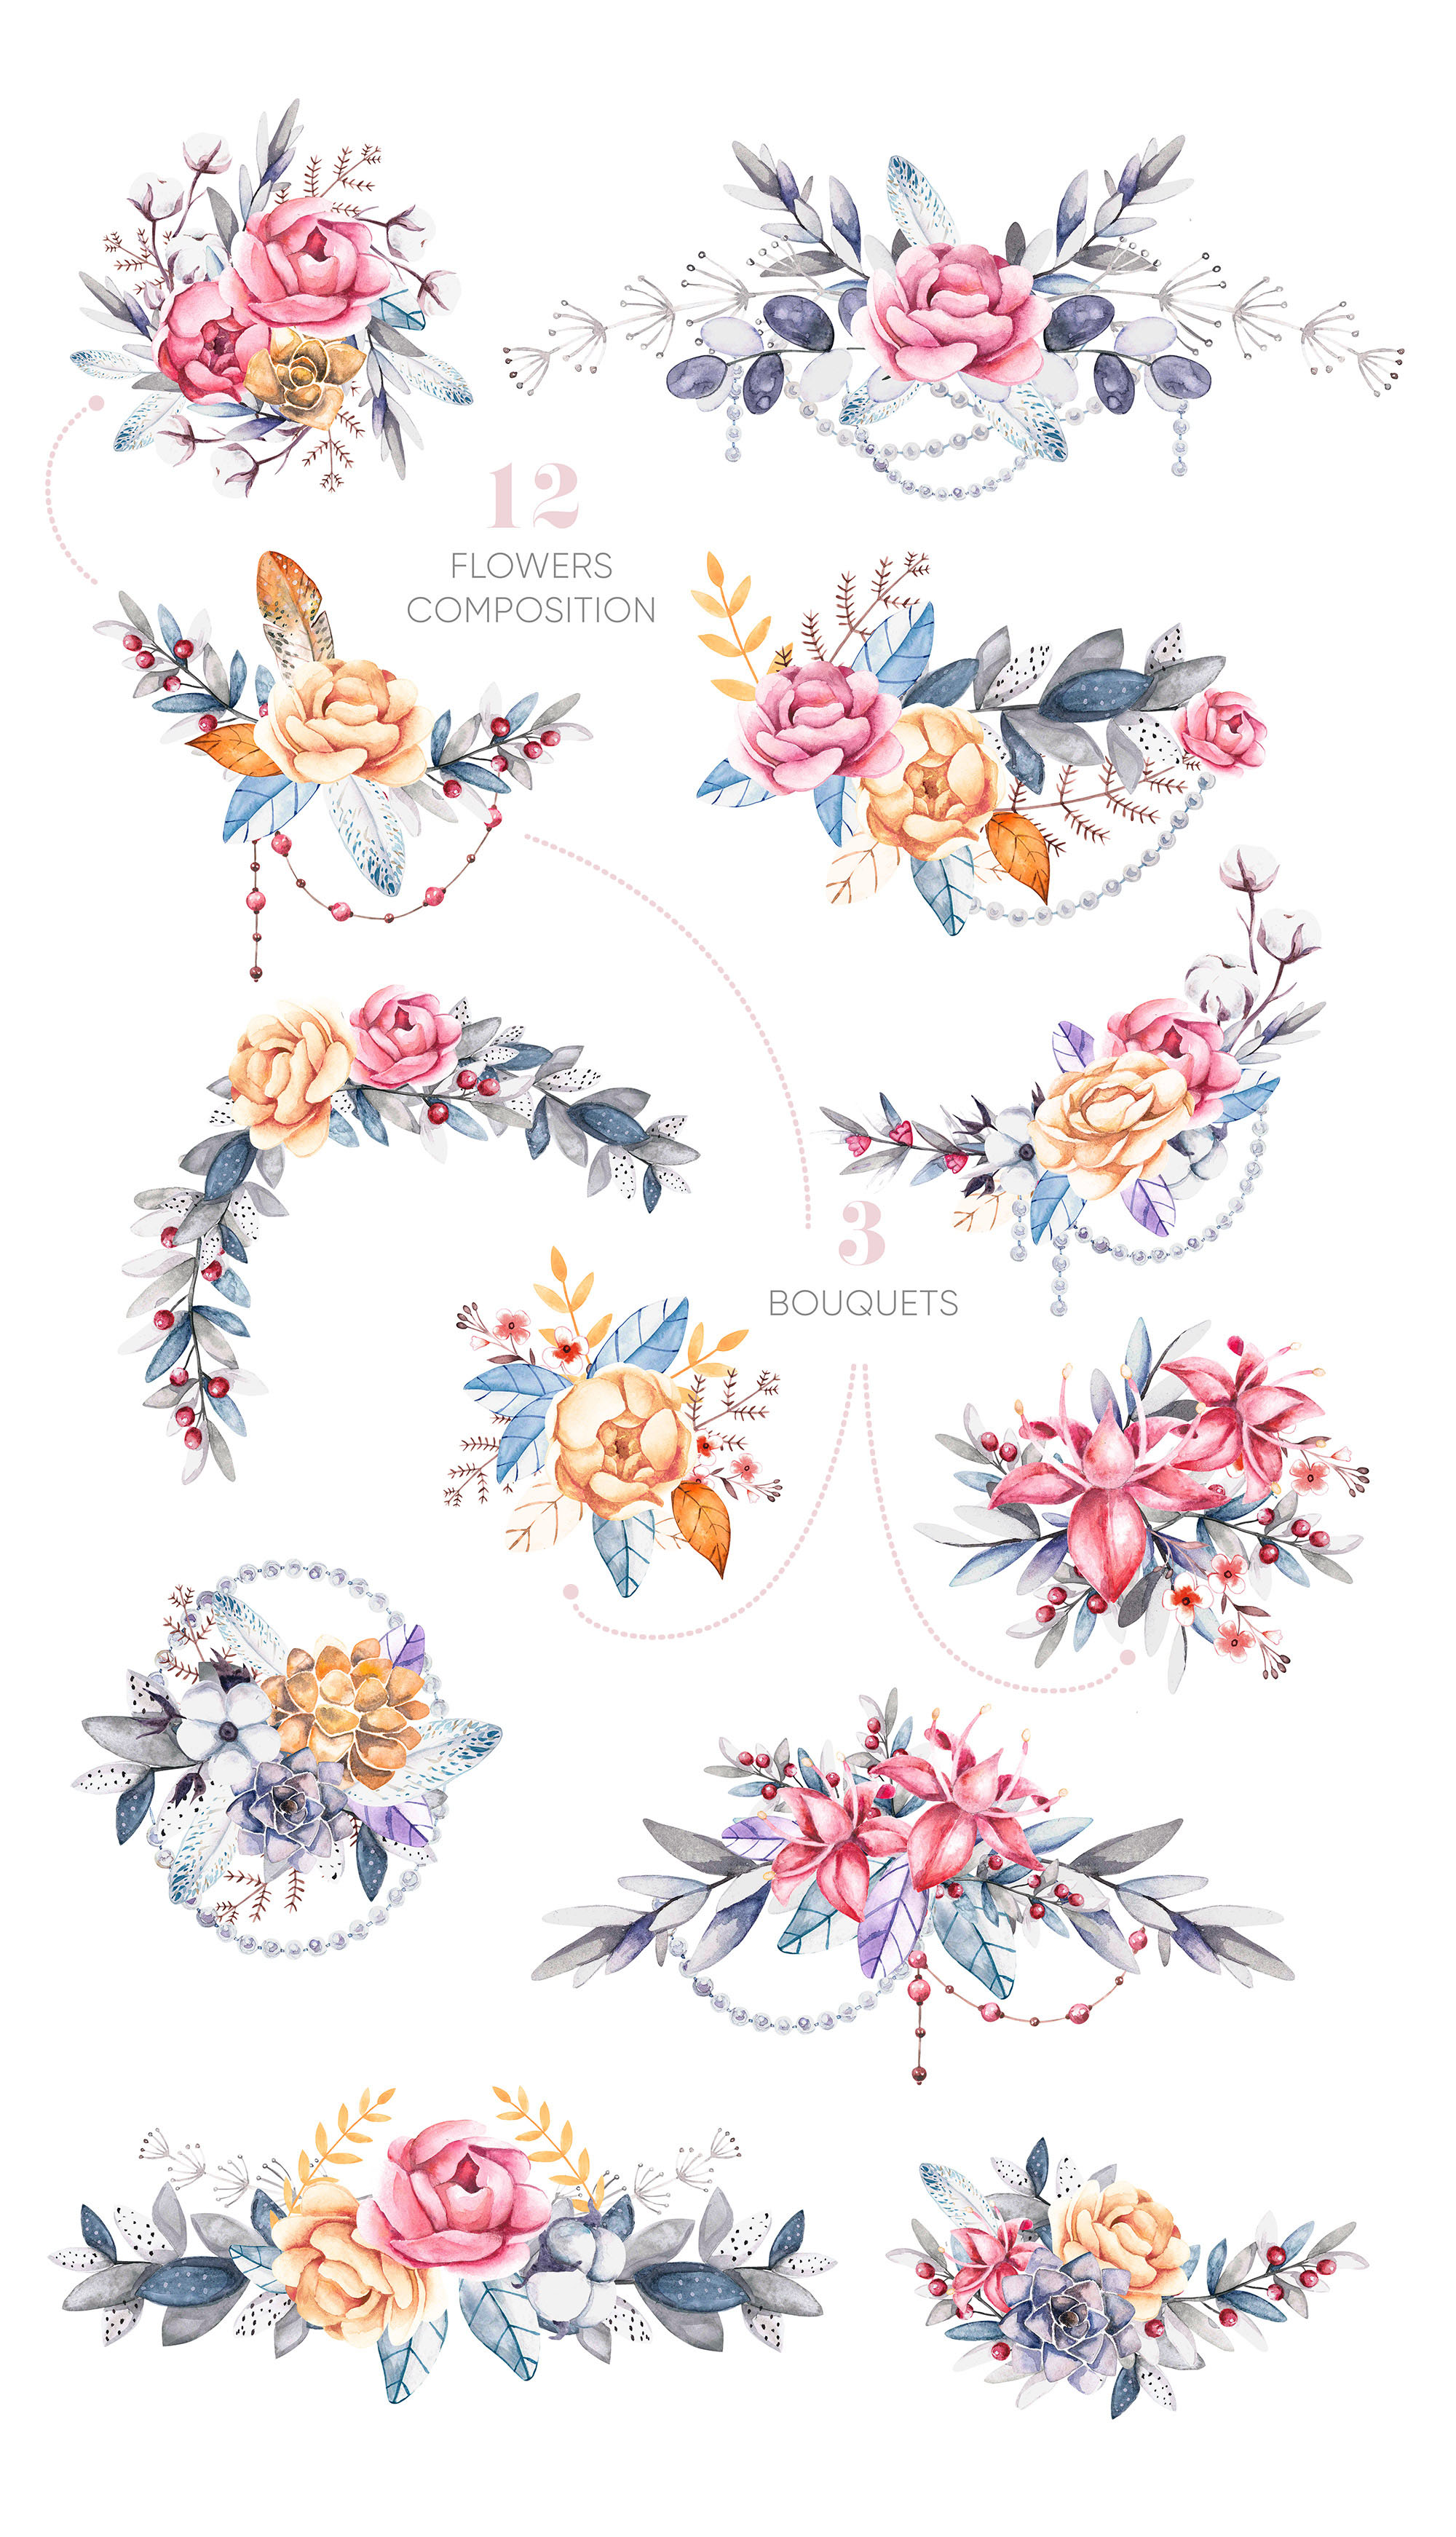 Watercolor Floral Clipart Elements and Compositions  FLORA